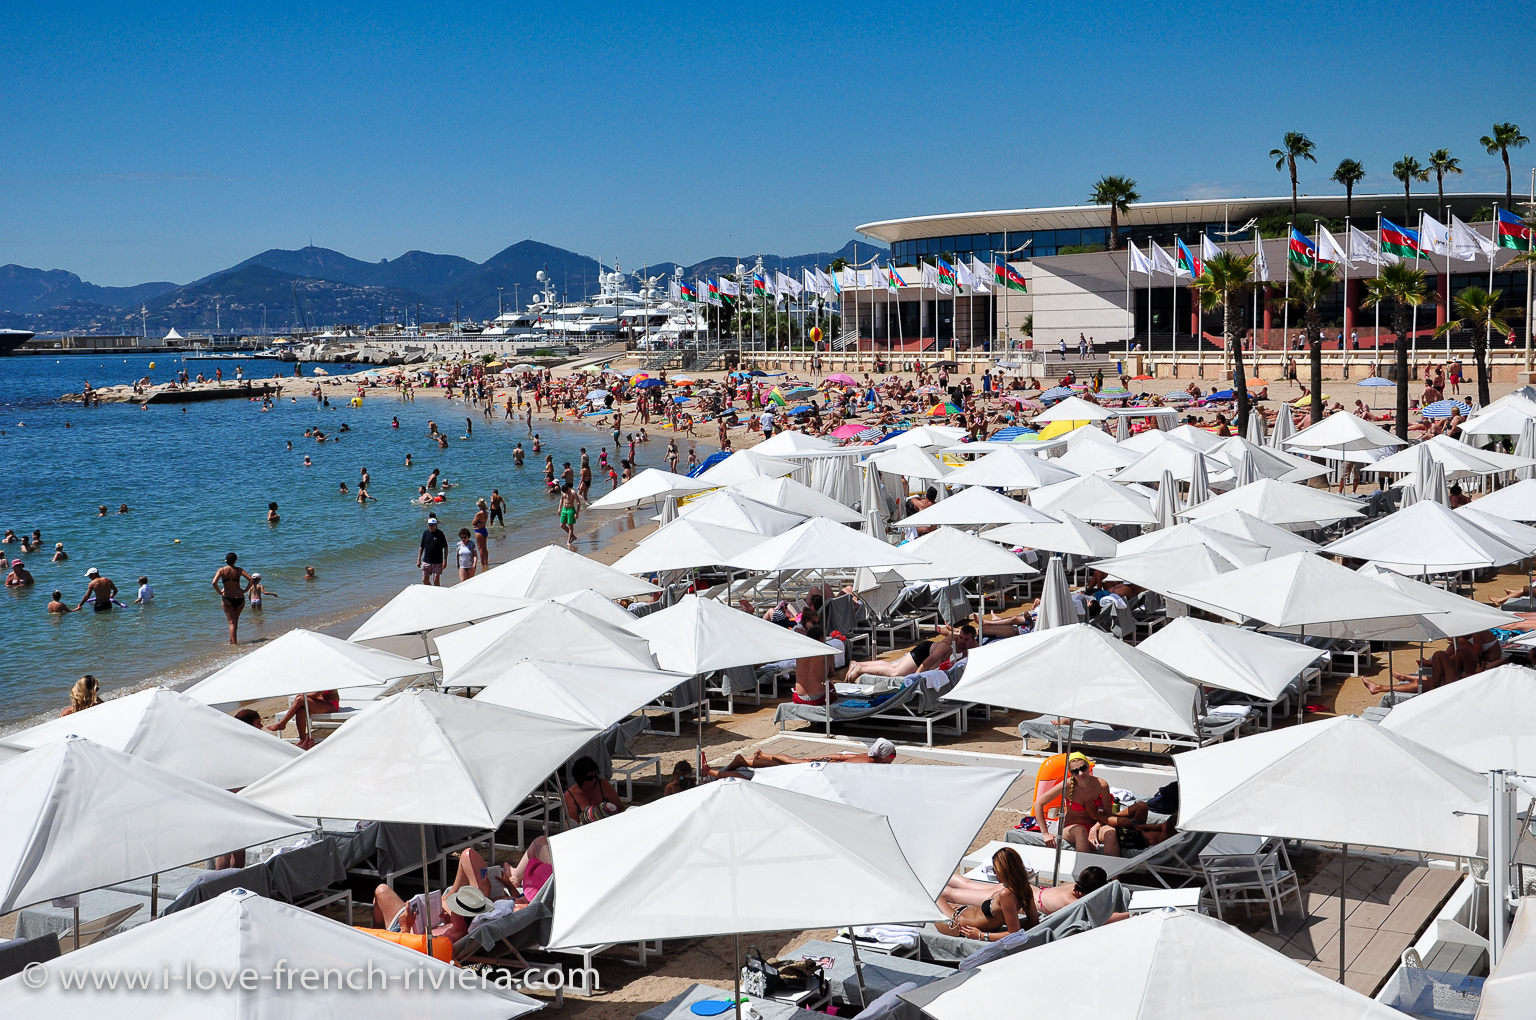 Cannes and its famous Palais des Congres, the Croisette and its beaches are easily accessible.